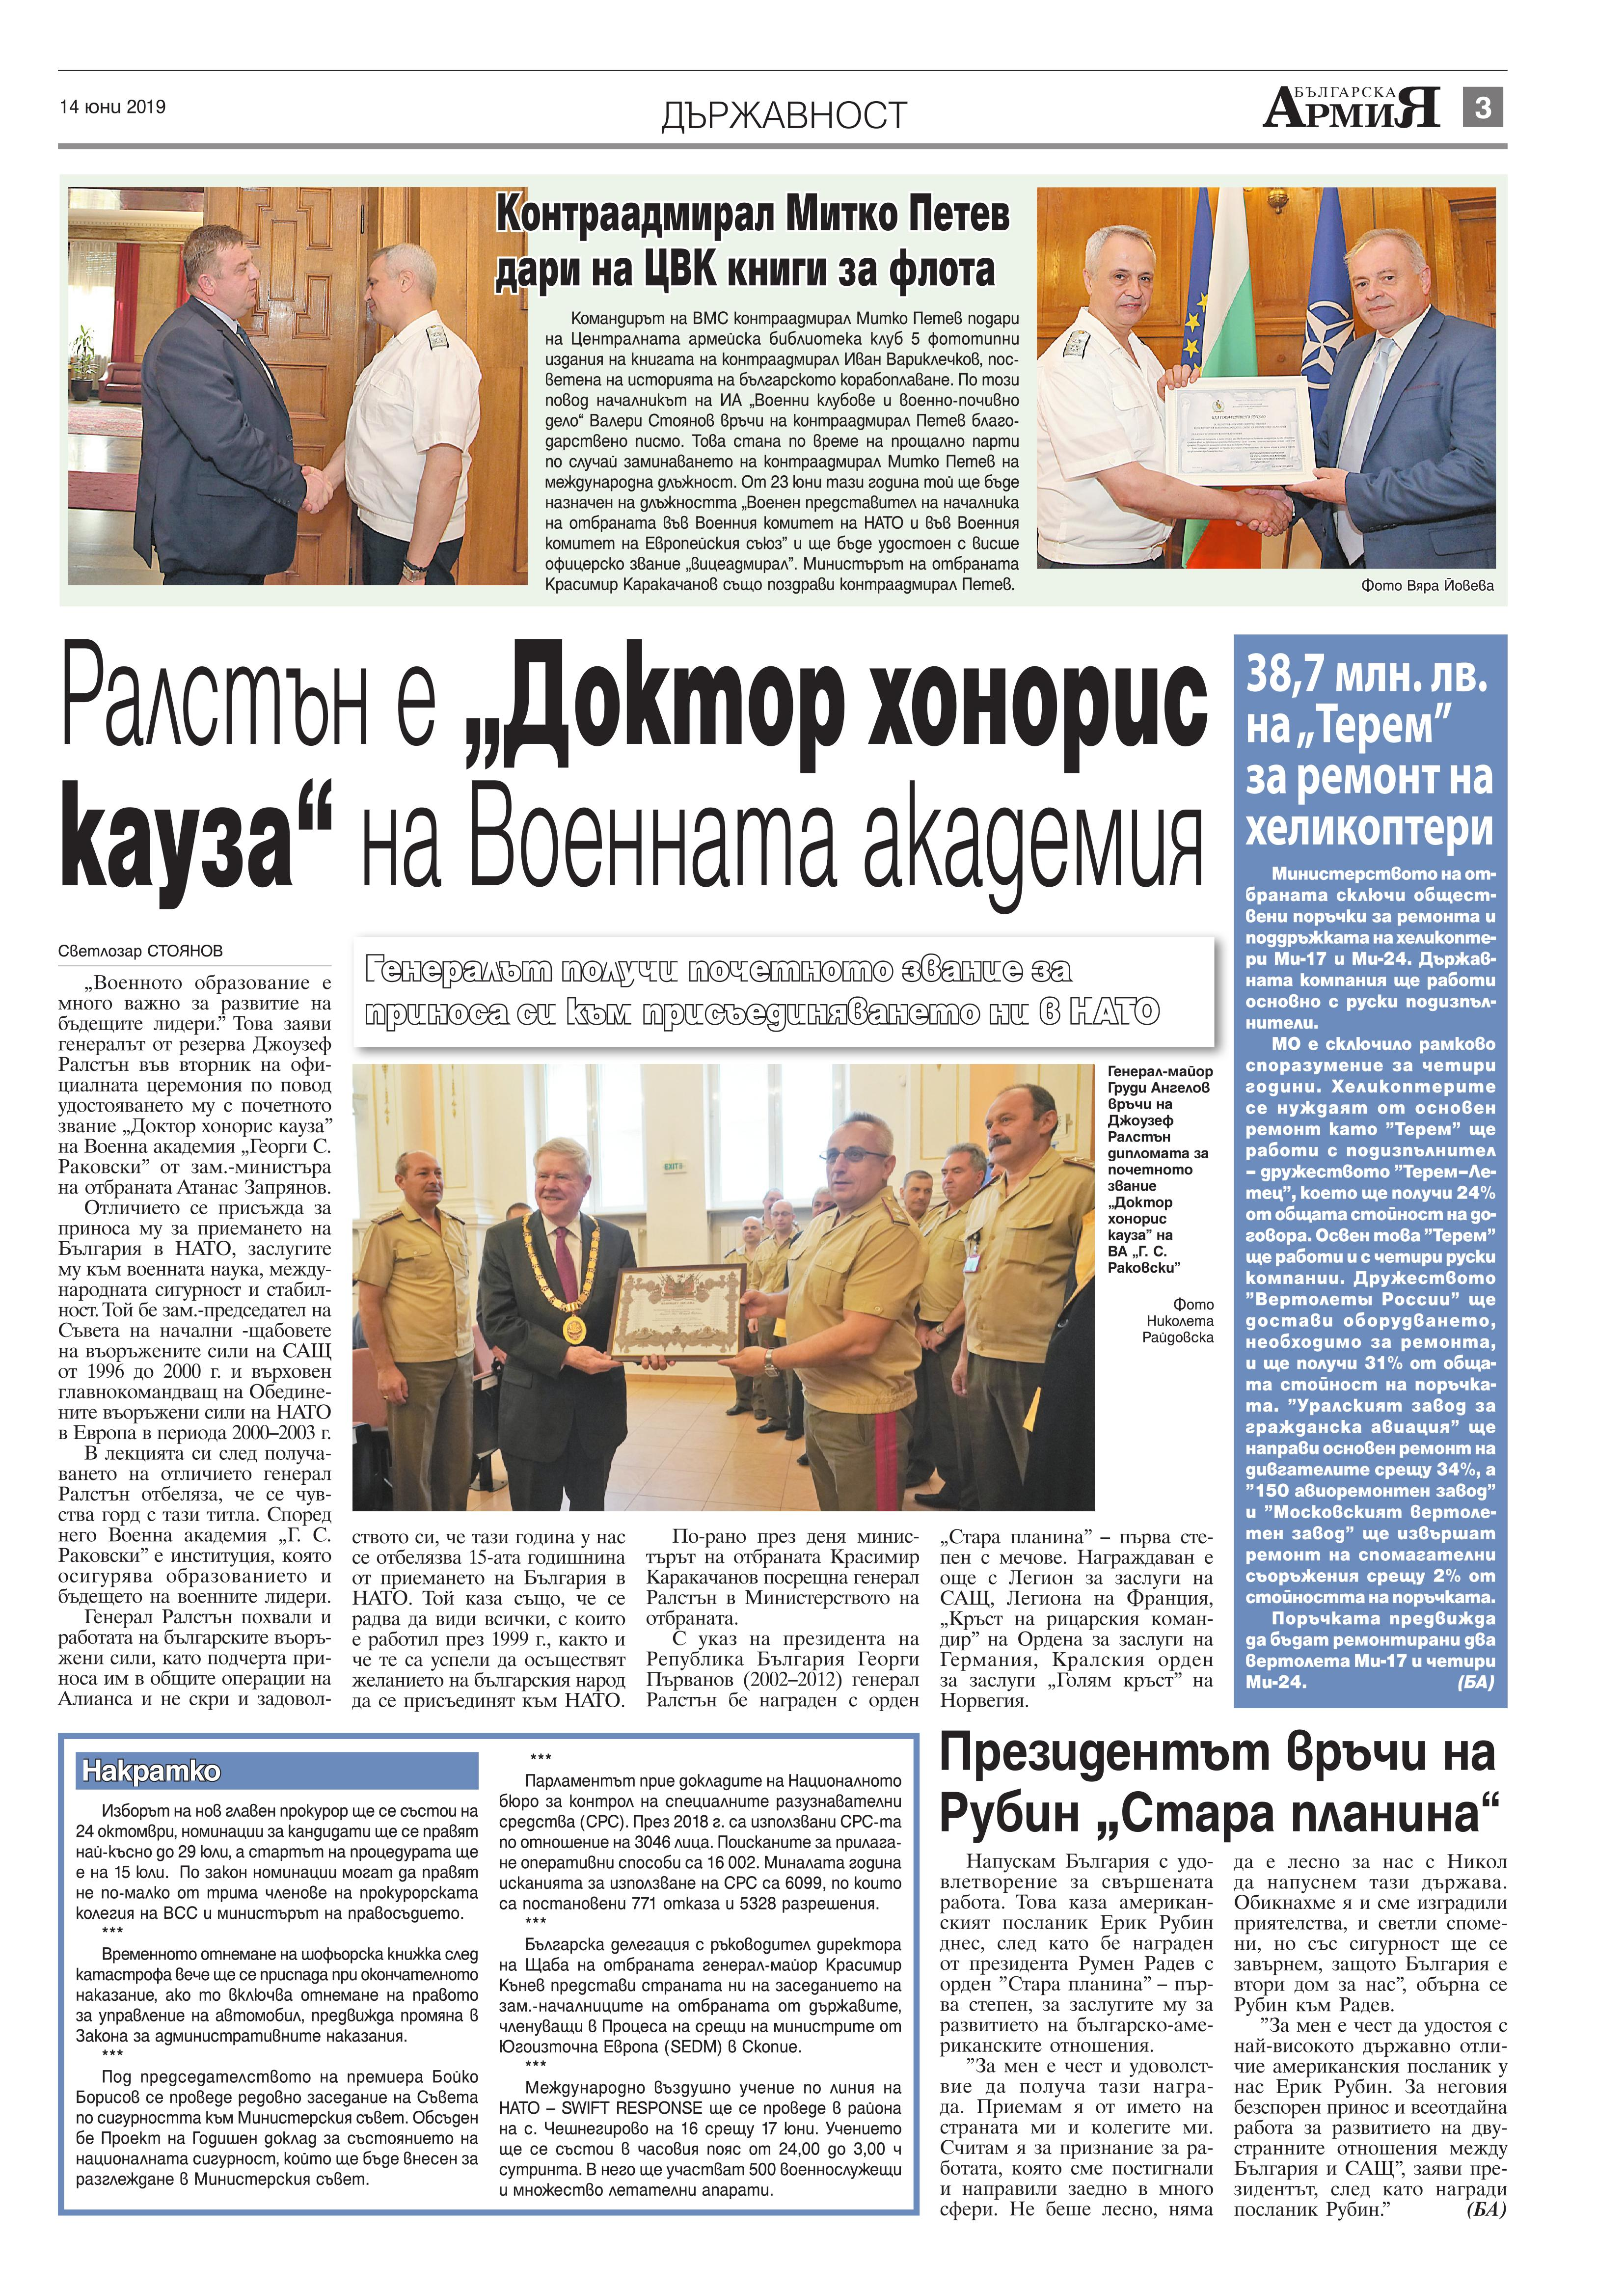 https://armymedia.bg/wp-content/uploads/2015/06/03.page1_-96.jpg